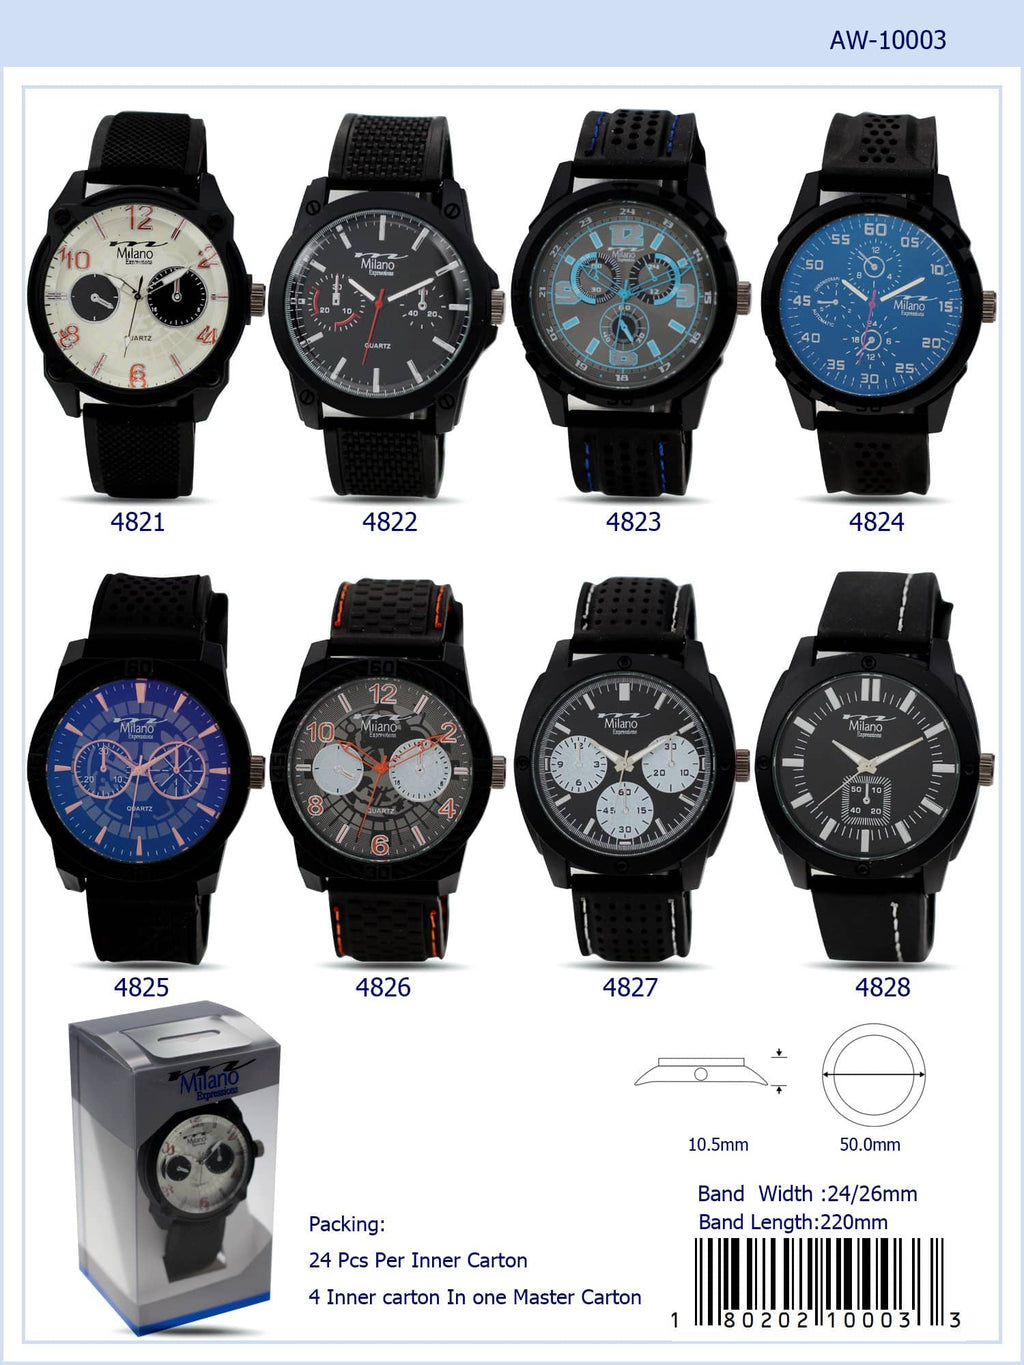 Pochlarn - Men's Watch Akcessoryz